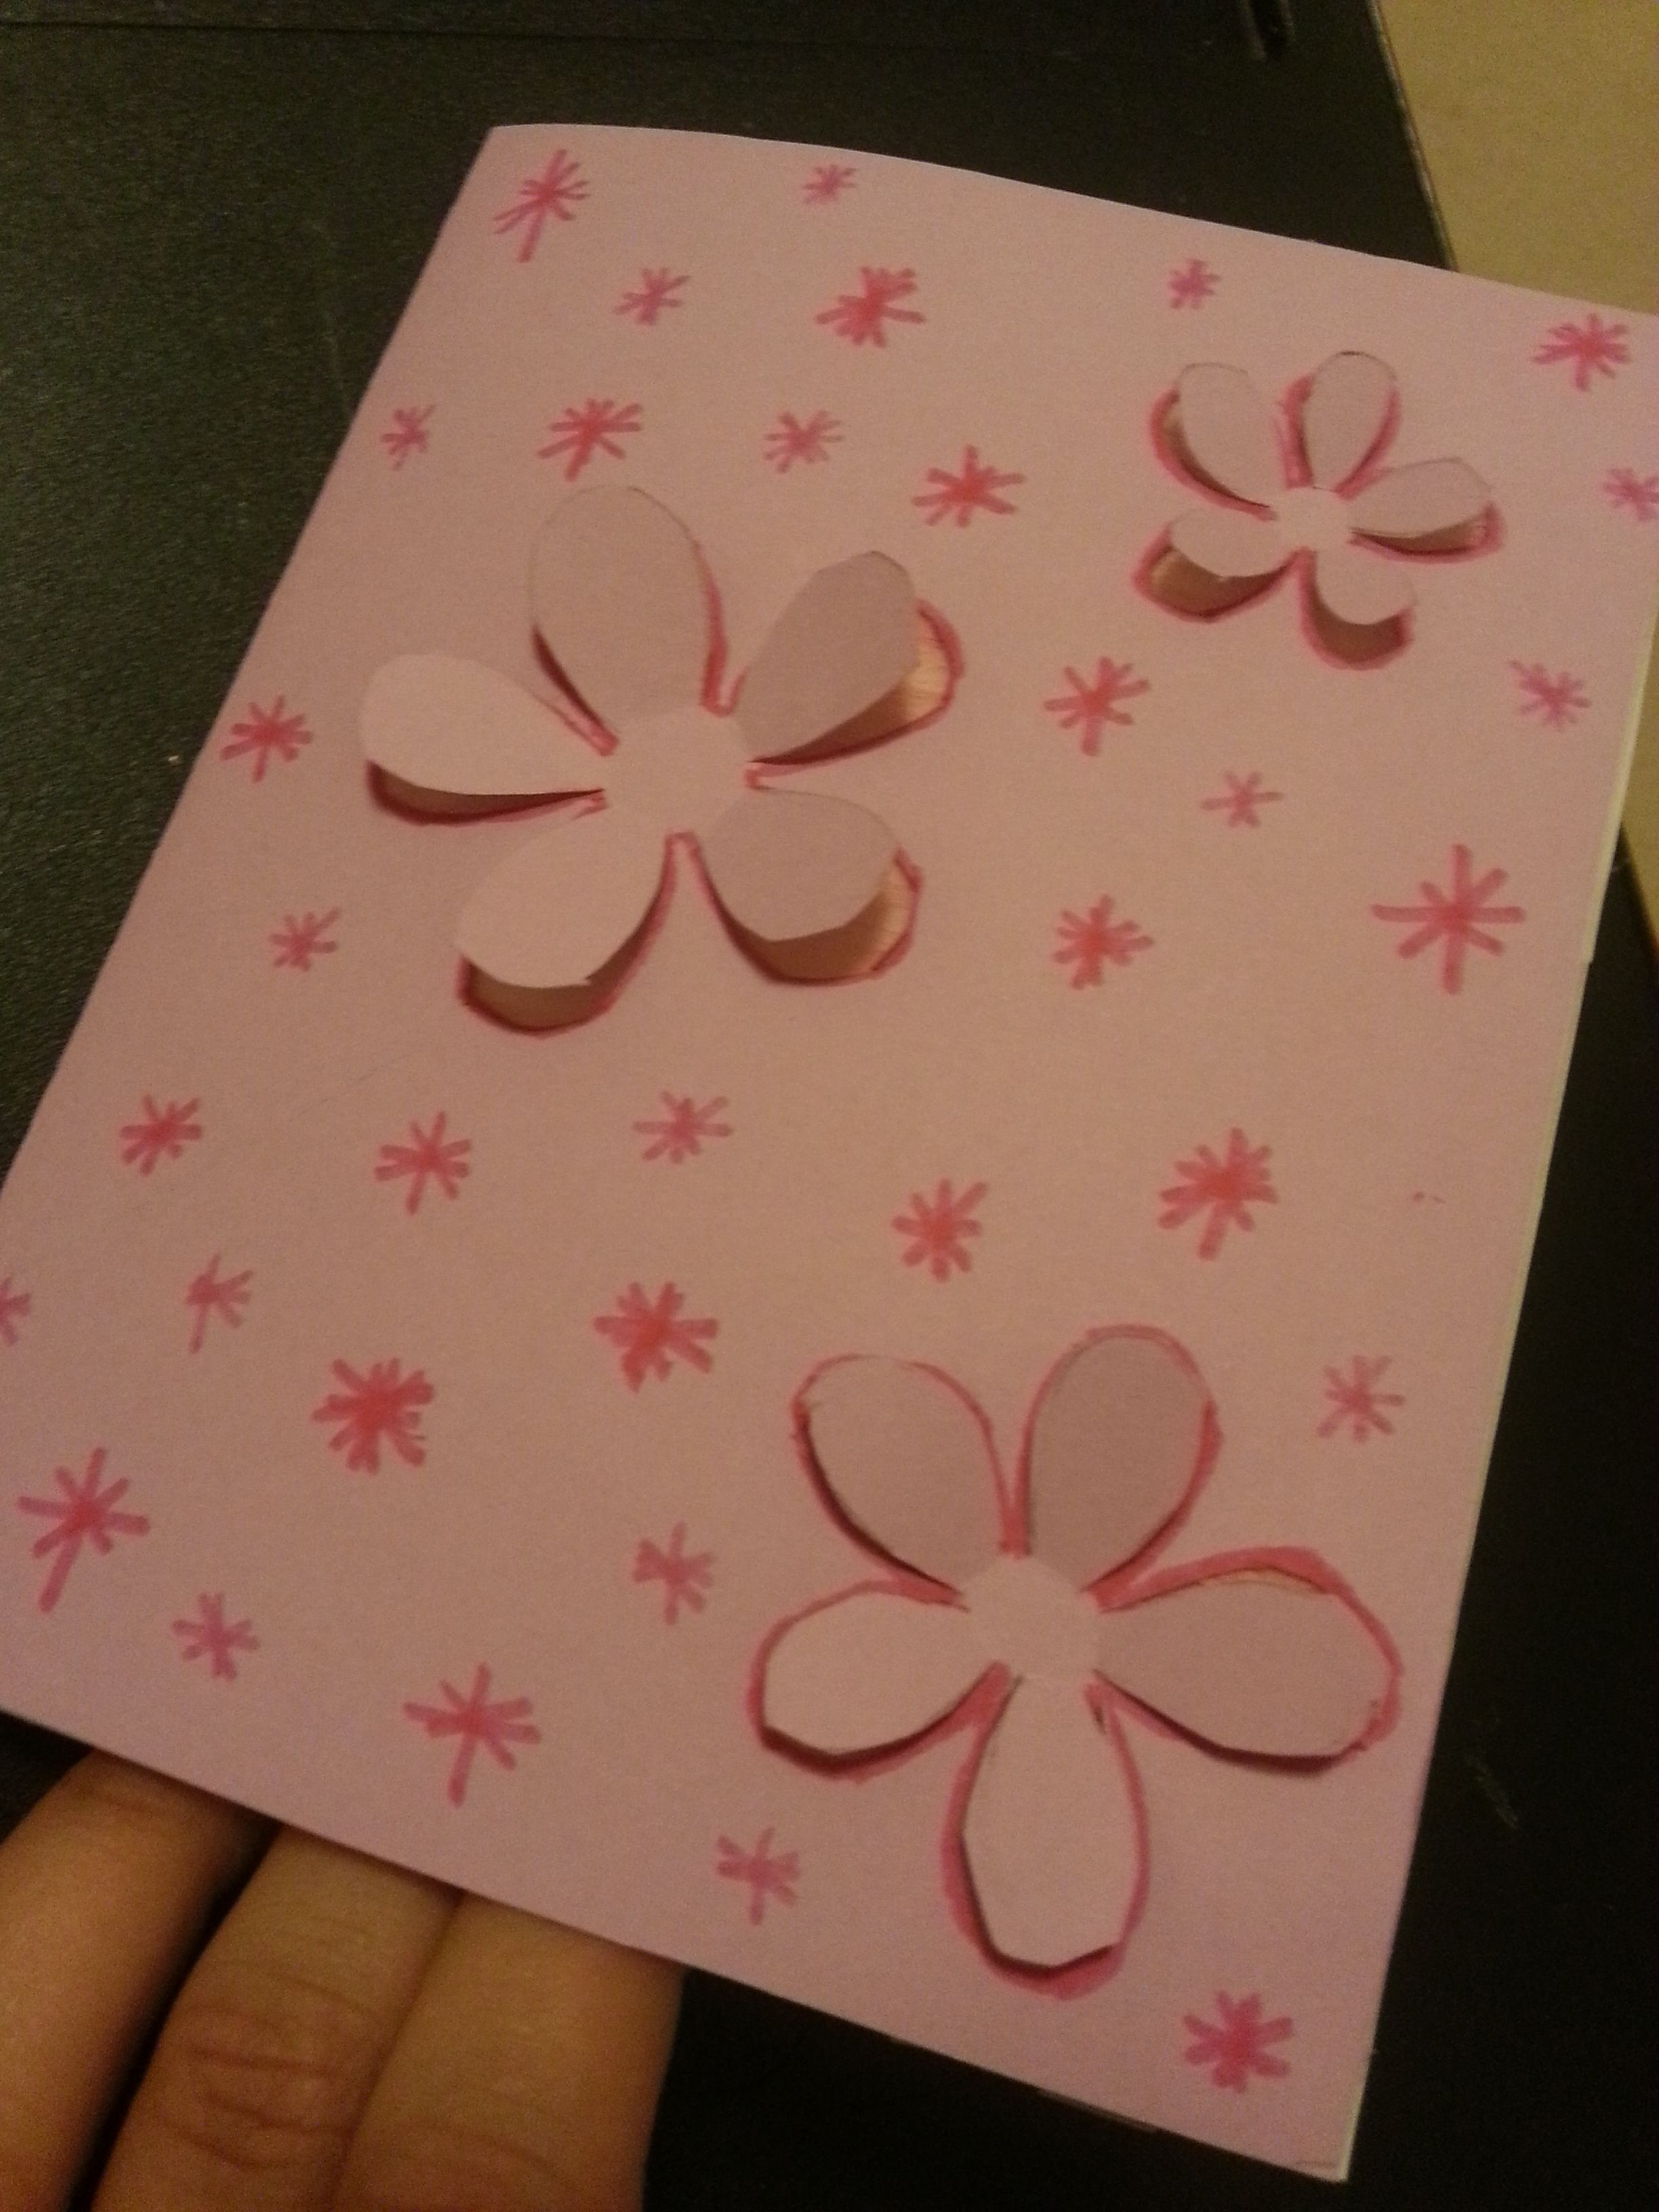 Mothers day card I made for mom :)